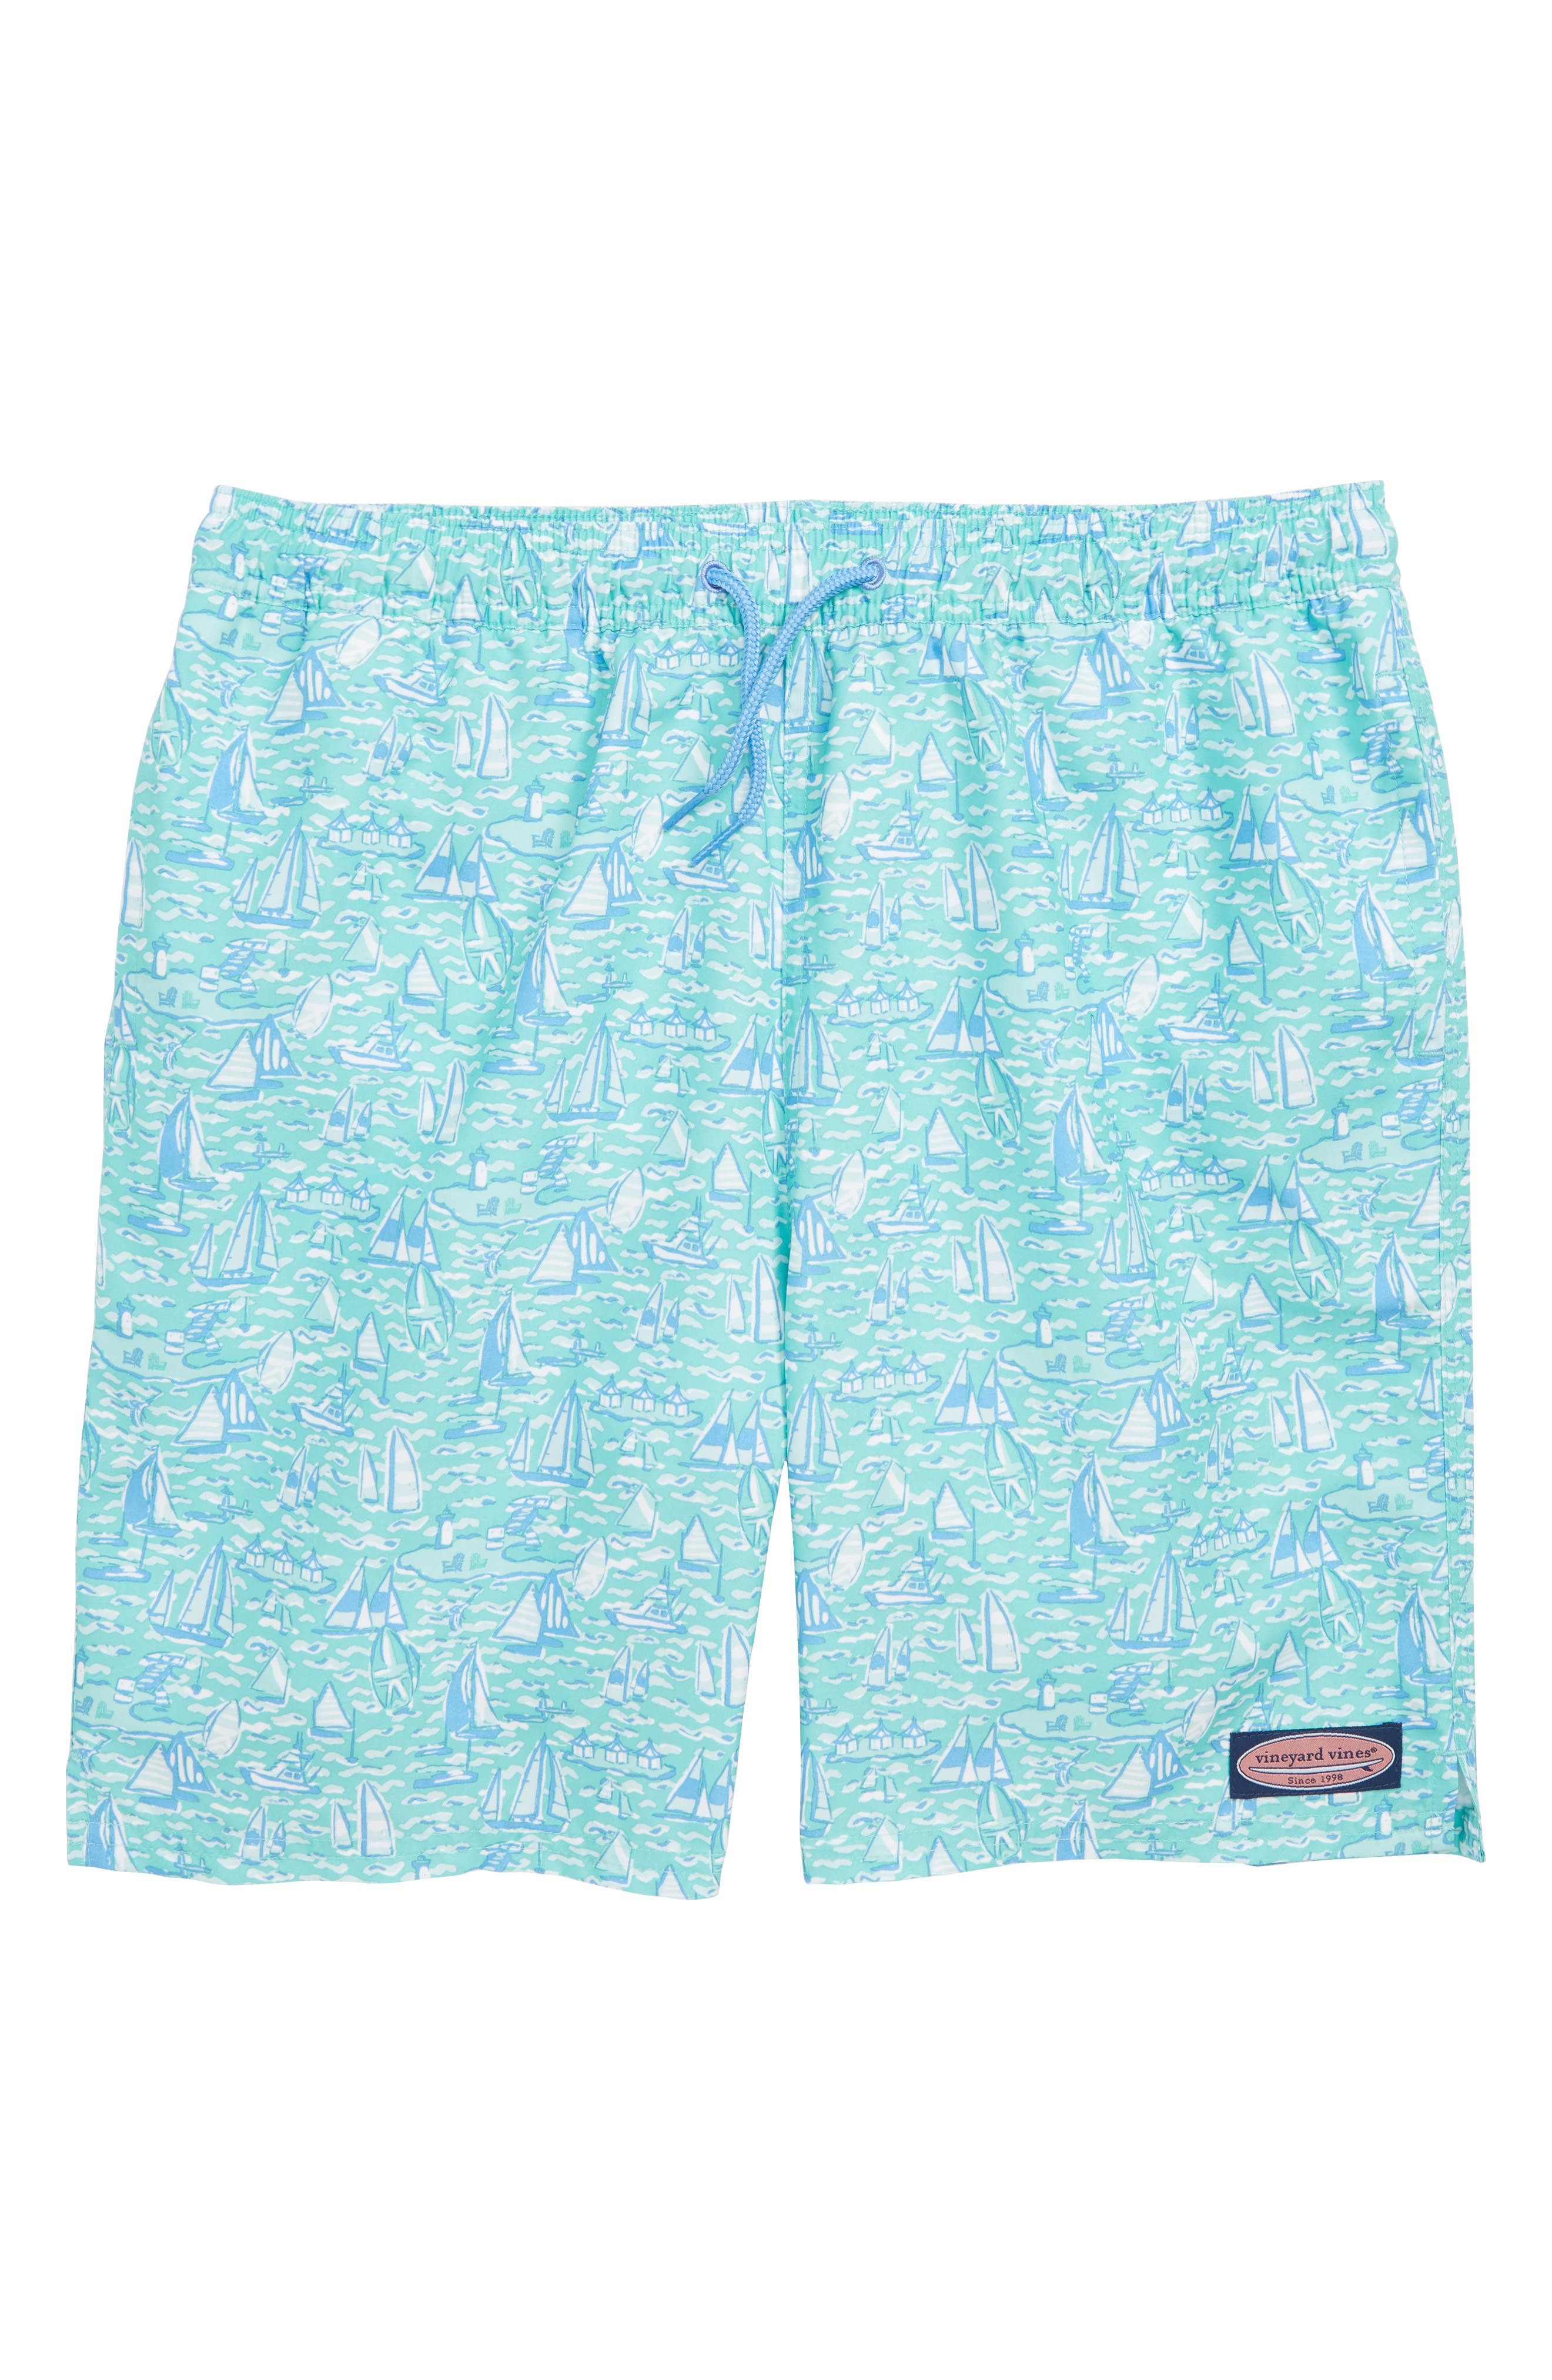 Chappy Sailing the Vineyard Swim Trunks,                         Main,                         color, 400